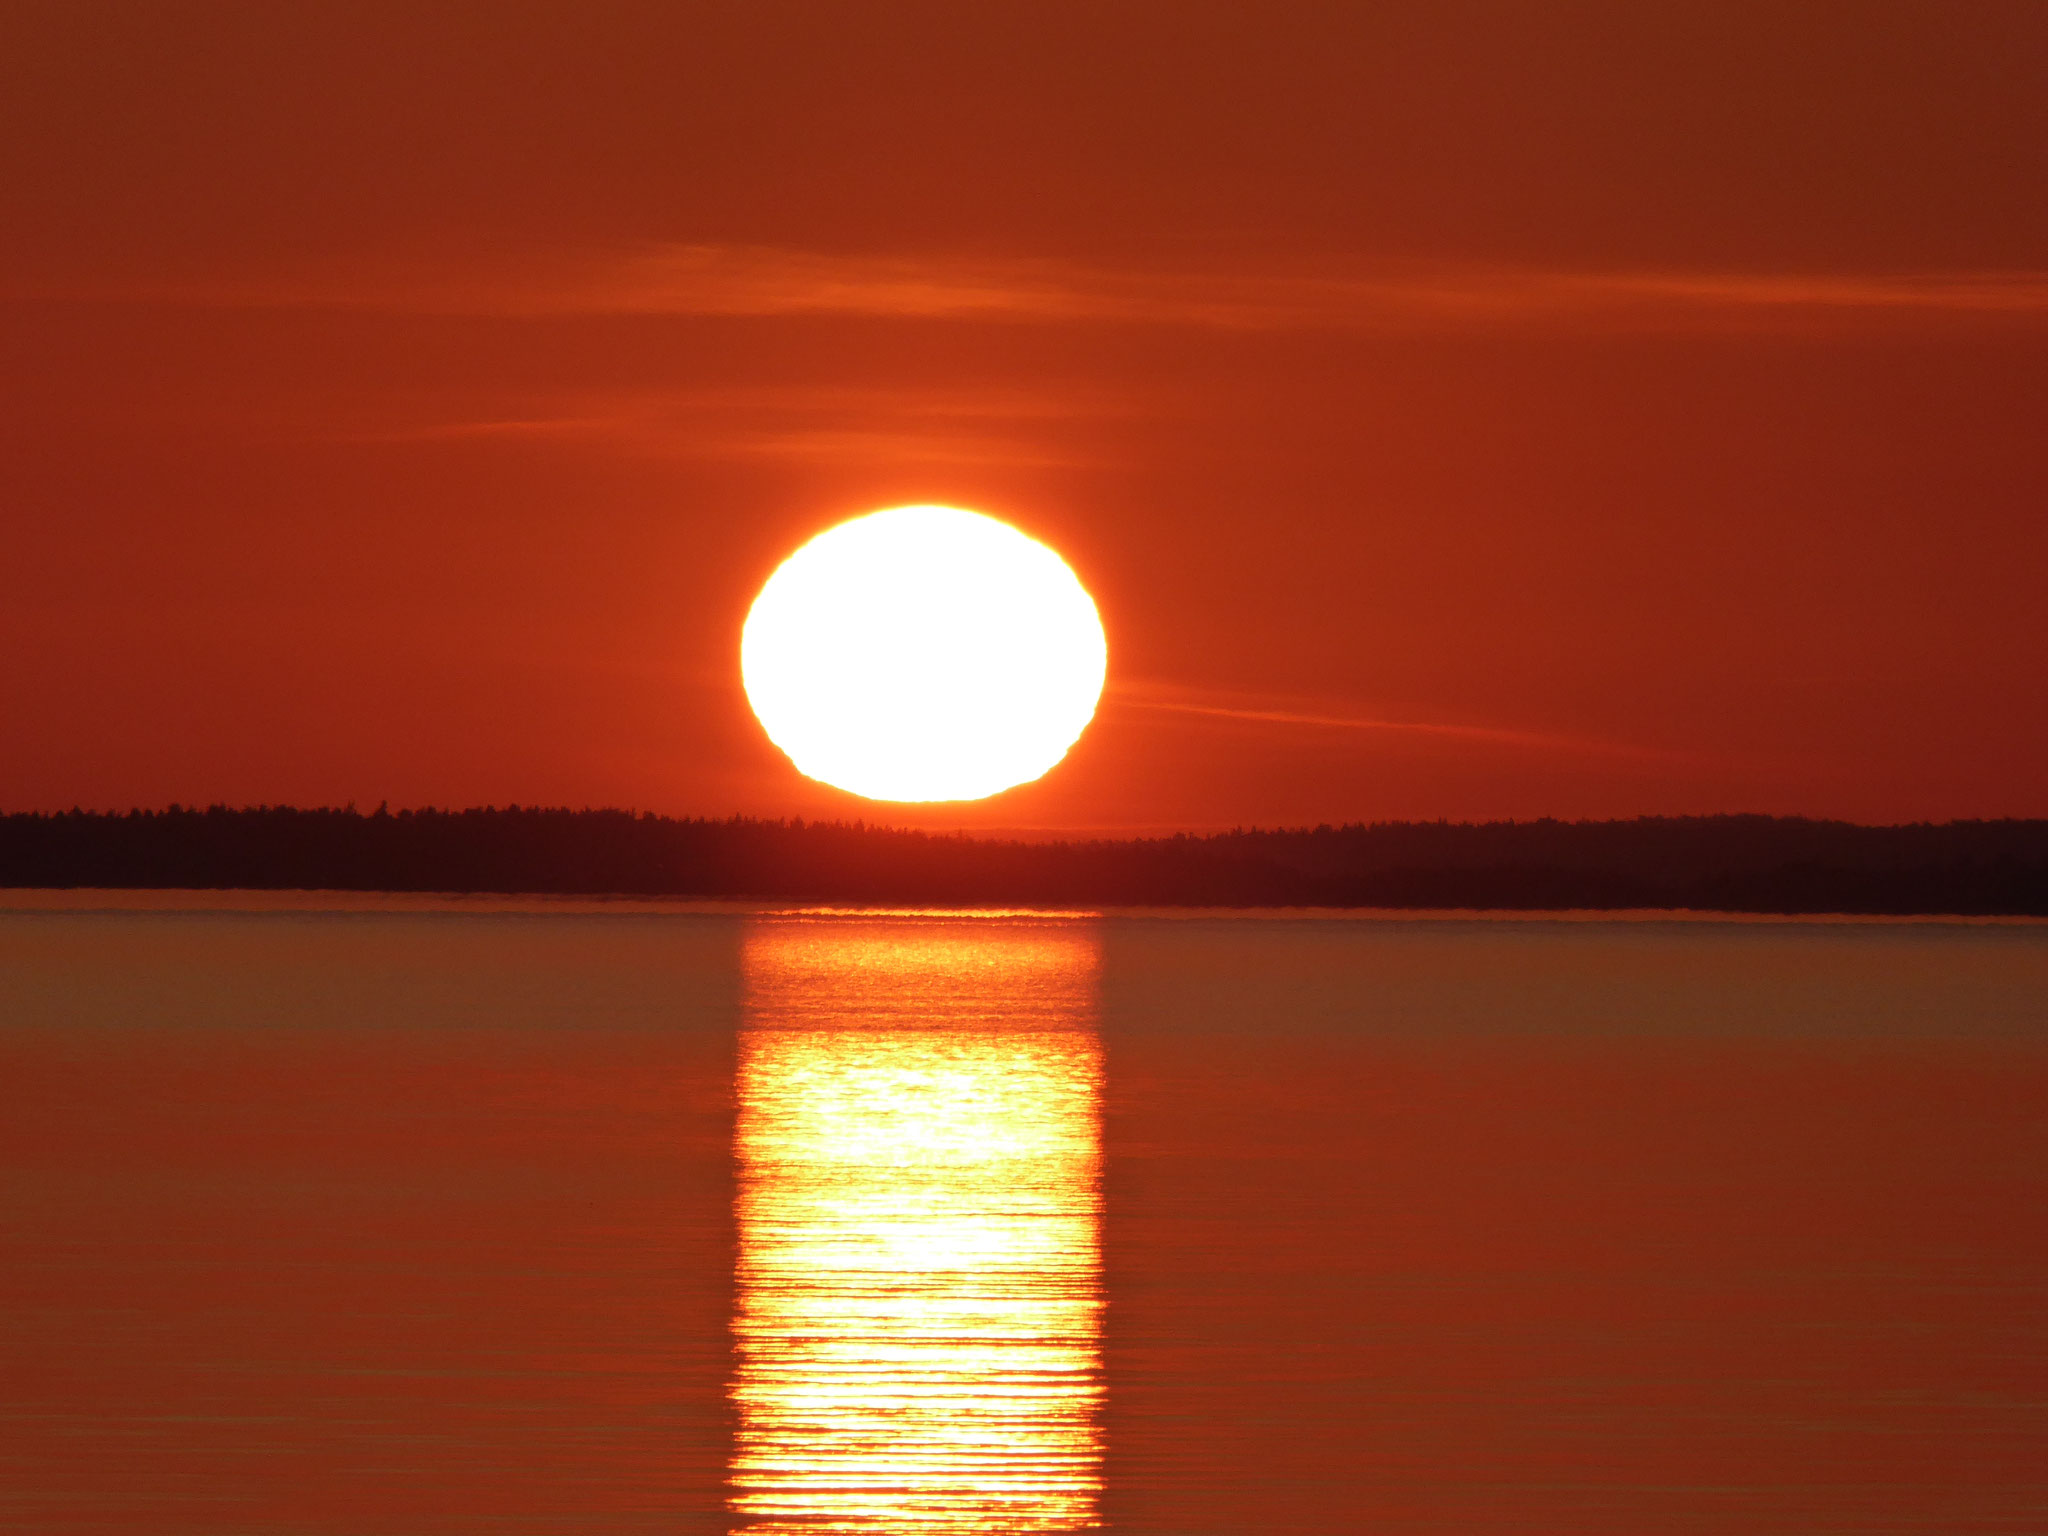 "Another wonderful sunset near the log house ""Sunny Mökki Sysmä"", Lake Päijänne, Finland"